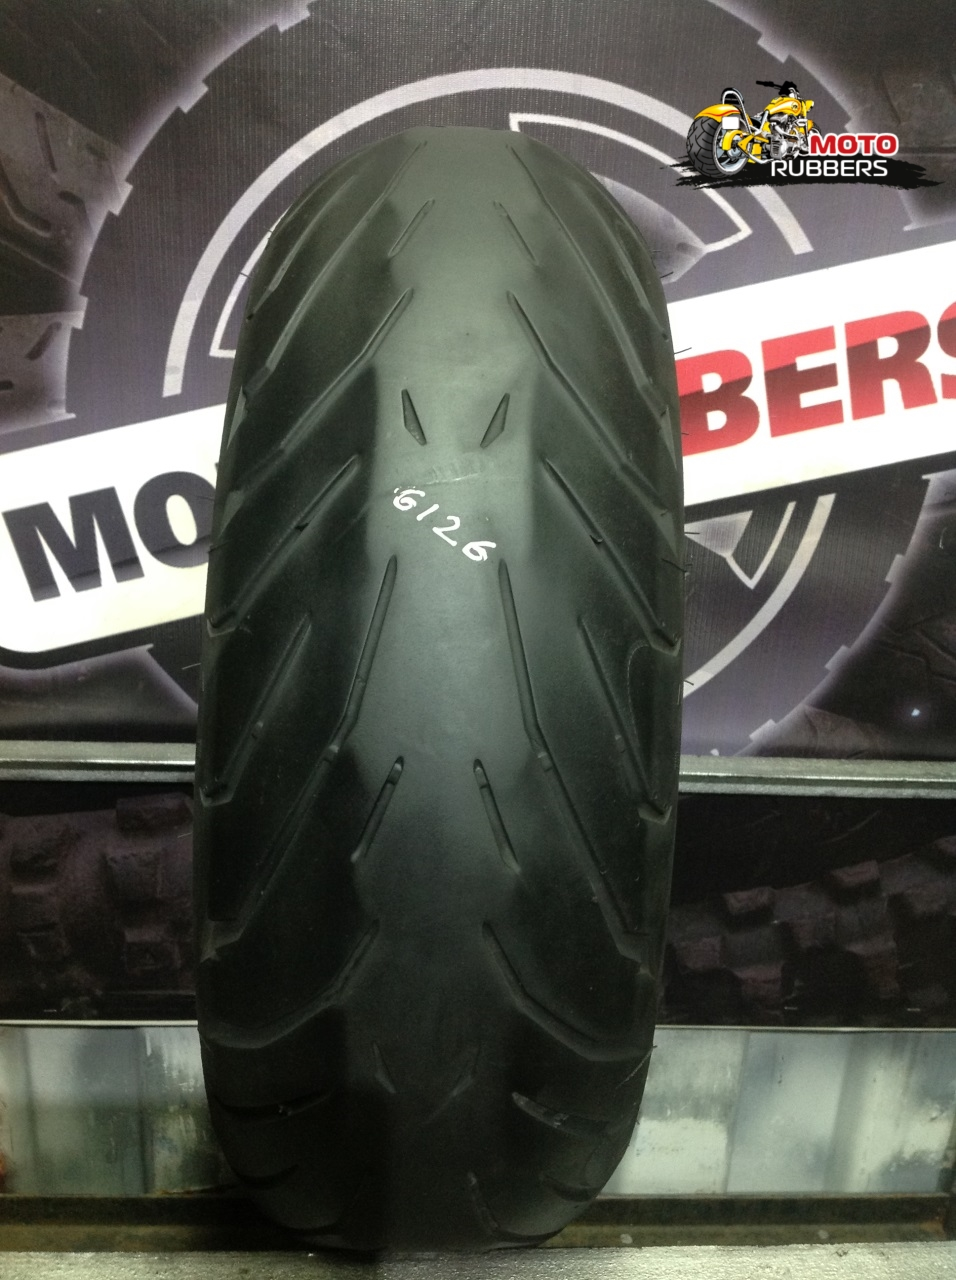 190/55 R17 Pirelli angel st